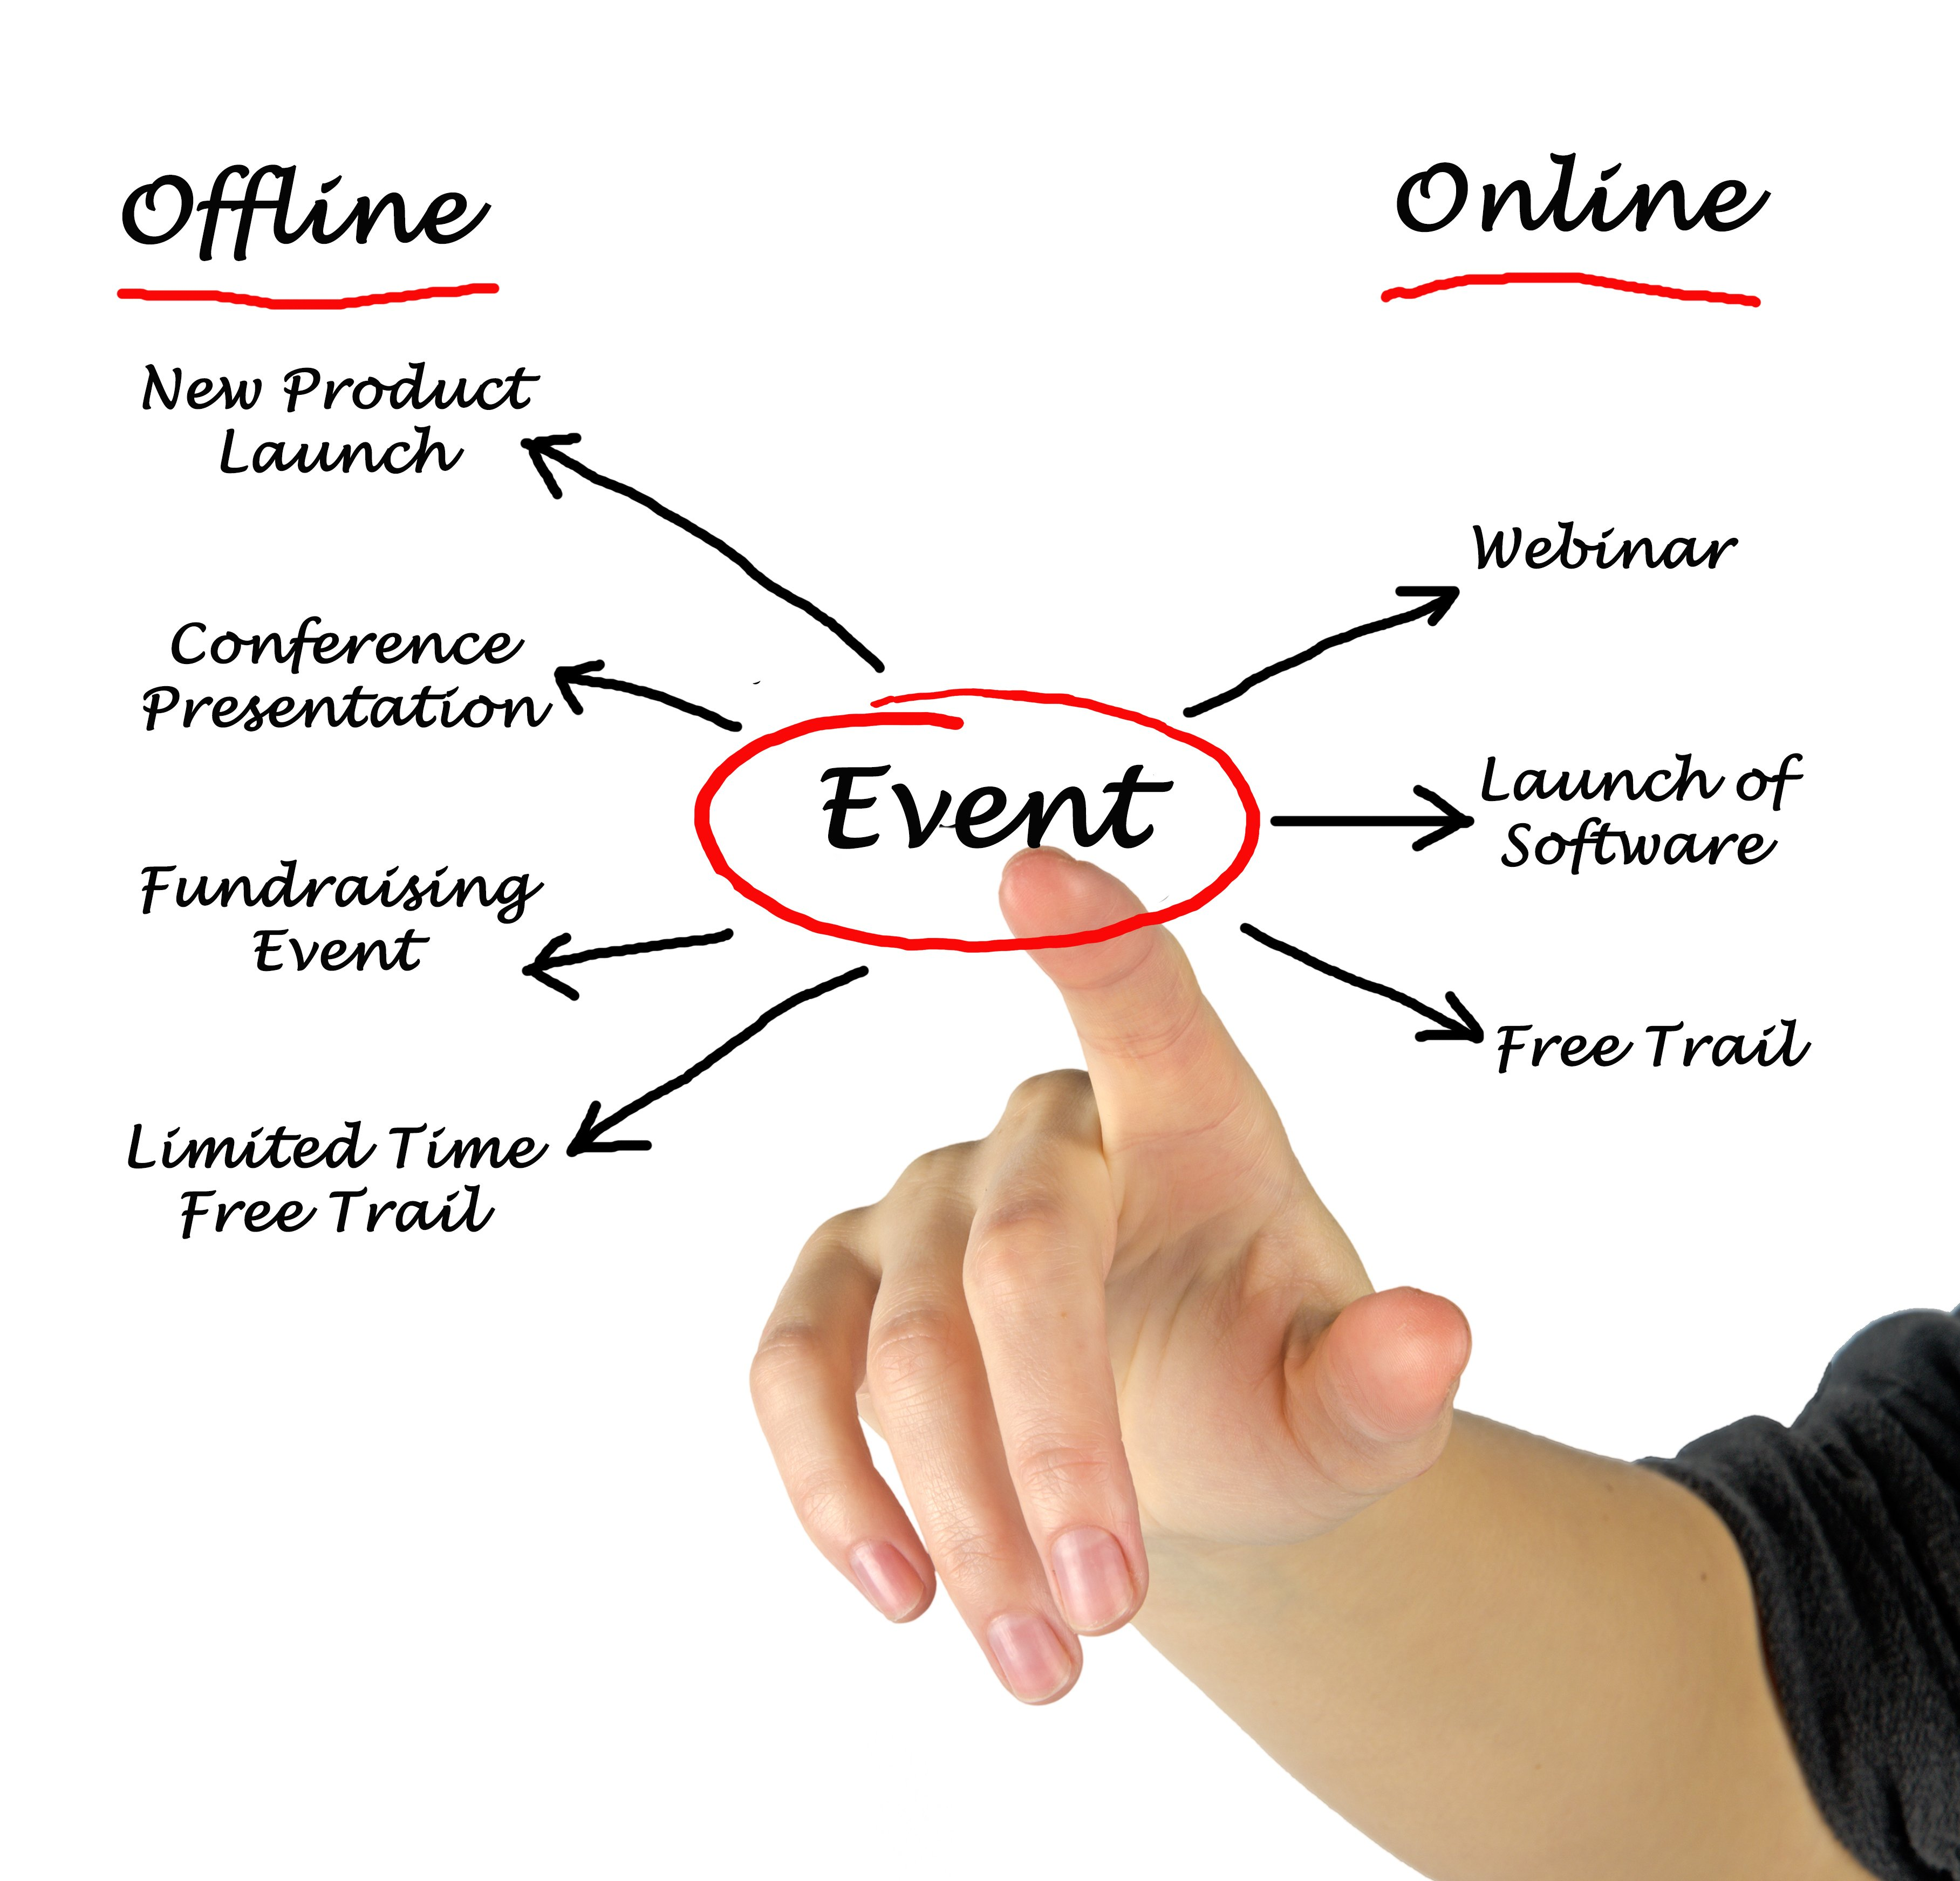 Cultivating Experiences through Offline Events